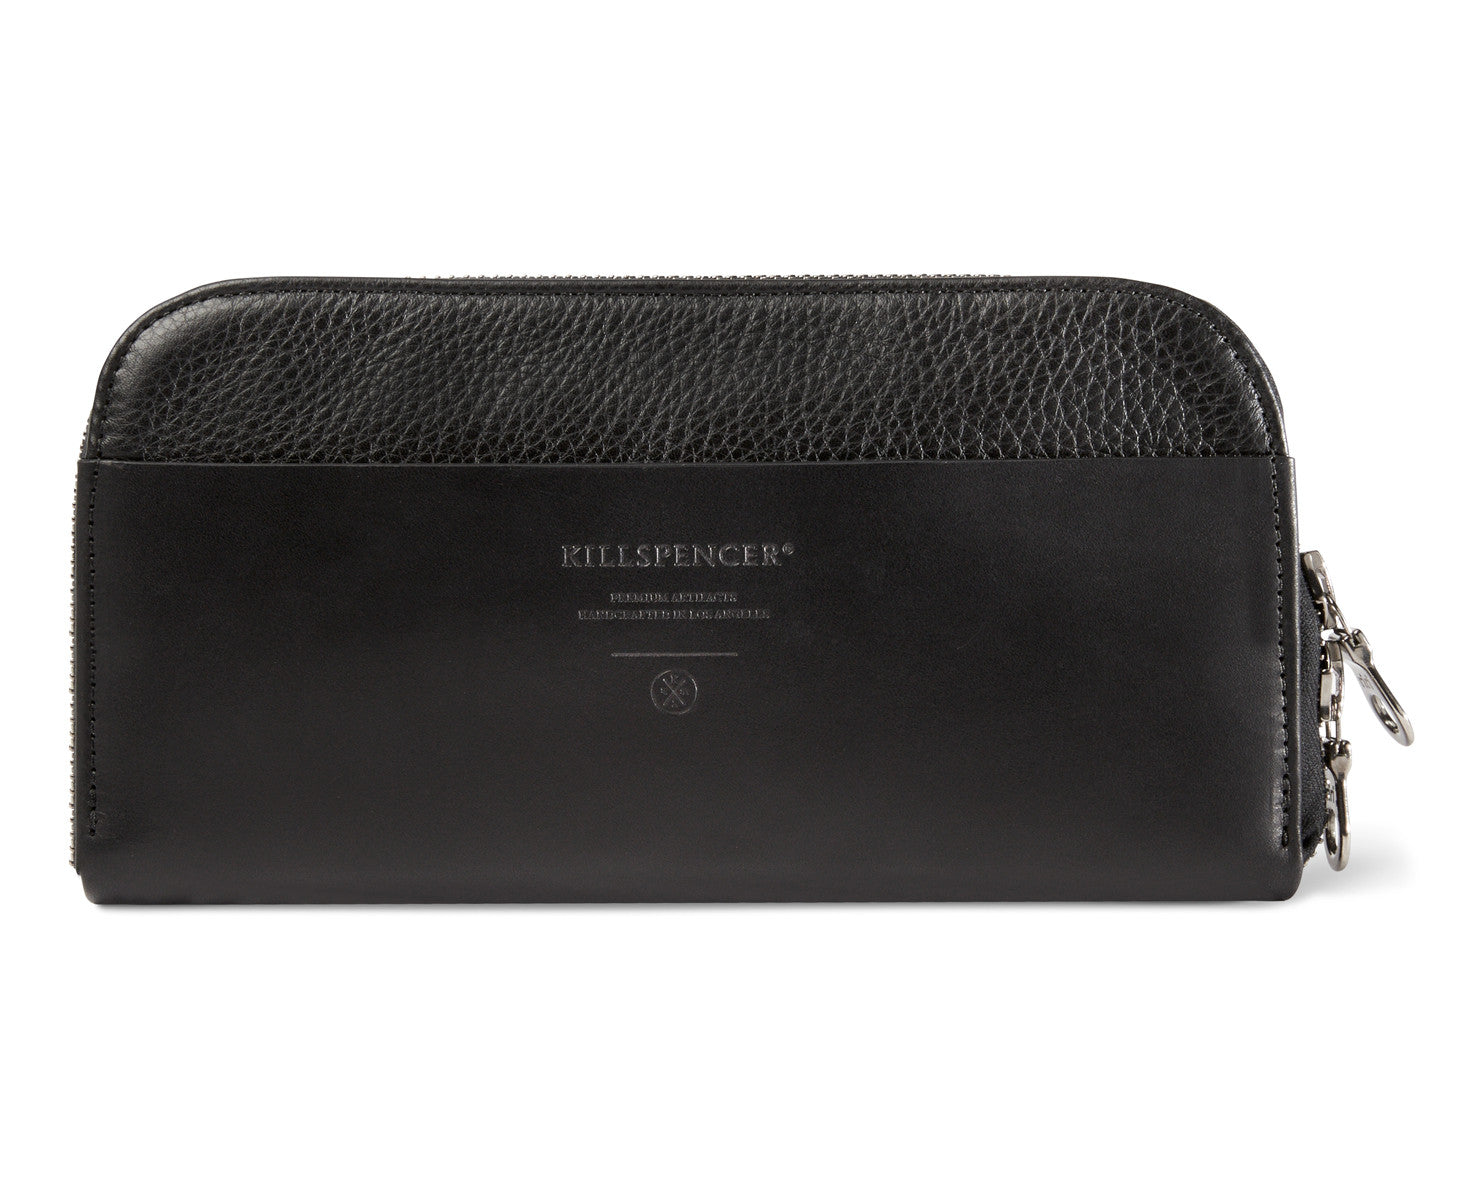 ZIPPERED WALLET | KILLSPENCER® - Black Leather